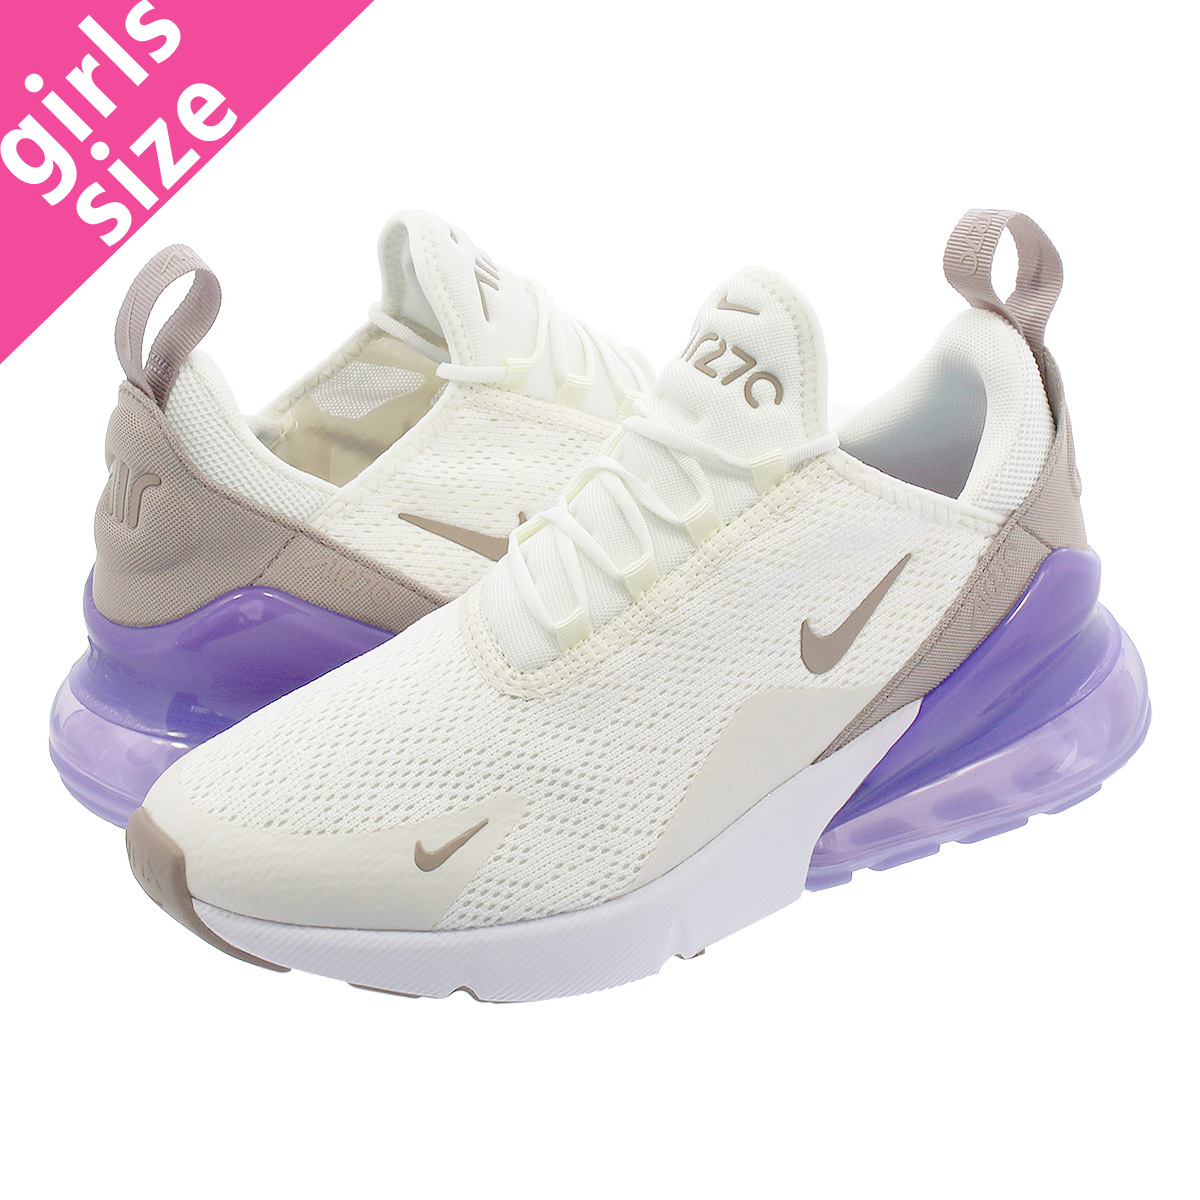 buy online 667a2 c5b0f NIKE WMNS AIR MAX 270 Nike women Air Max 270 SAIL/PUMICE/SPACE PURPLE/WHITE  ah6789-107